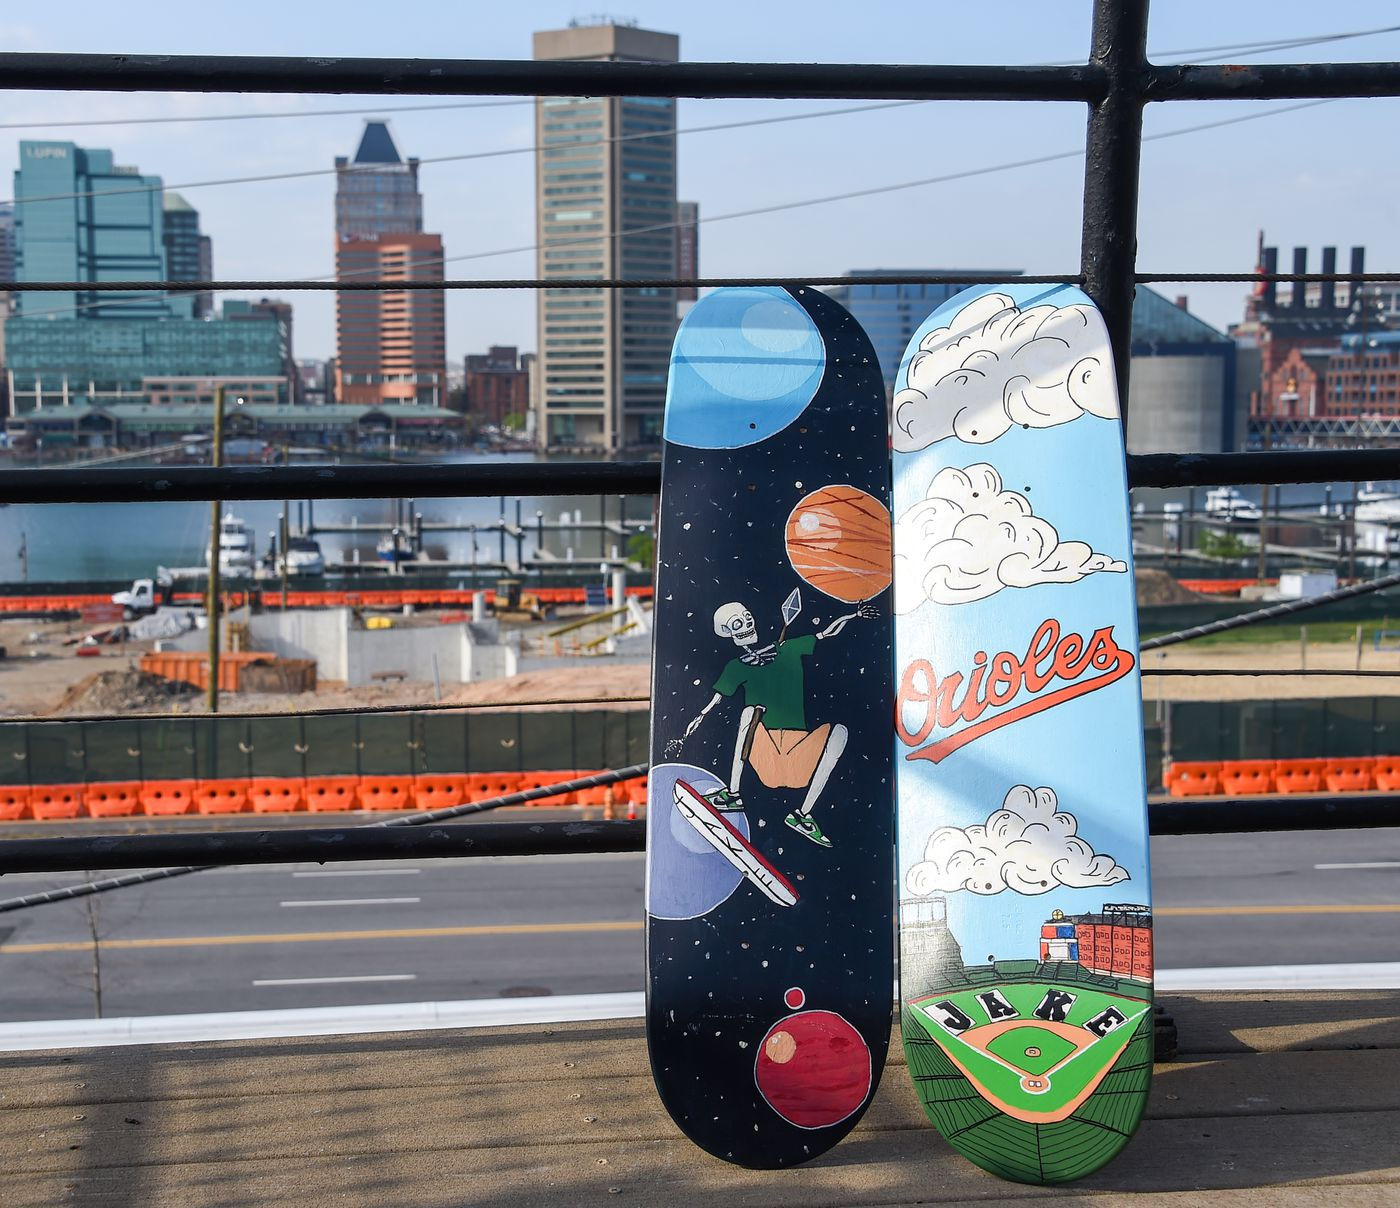 """""""Two Heads are Better Than One"""" and """"A Perfect Day at the Yard"""" by Reid Glaros painted on skateboards sit on the deck of Cindy Conklin on Wednesday, April 7, 2021; the boards will be auctioned off to help fund the completion of Jake's Skate Park at Rash Field, which is seen in the background."""